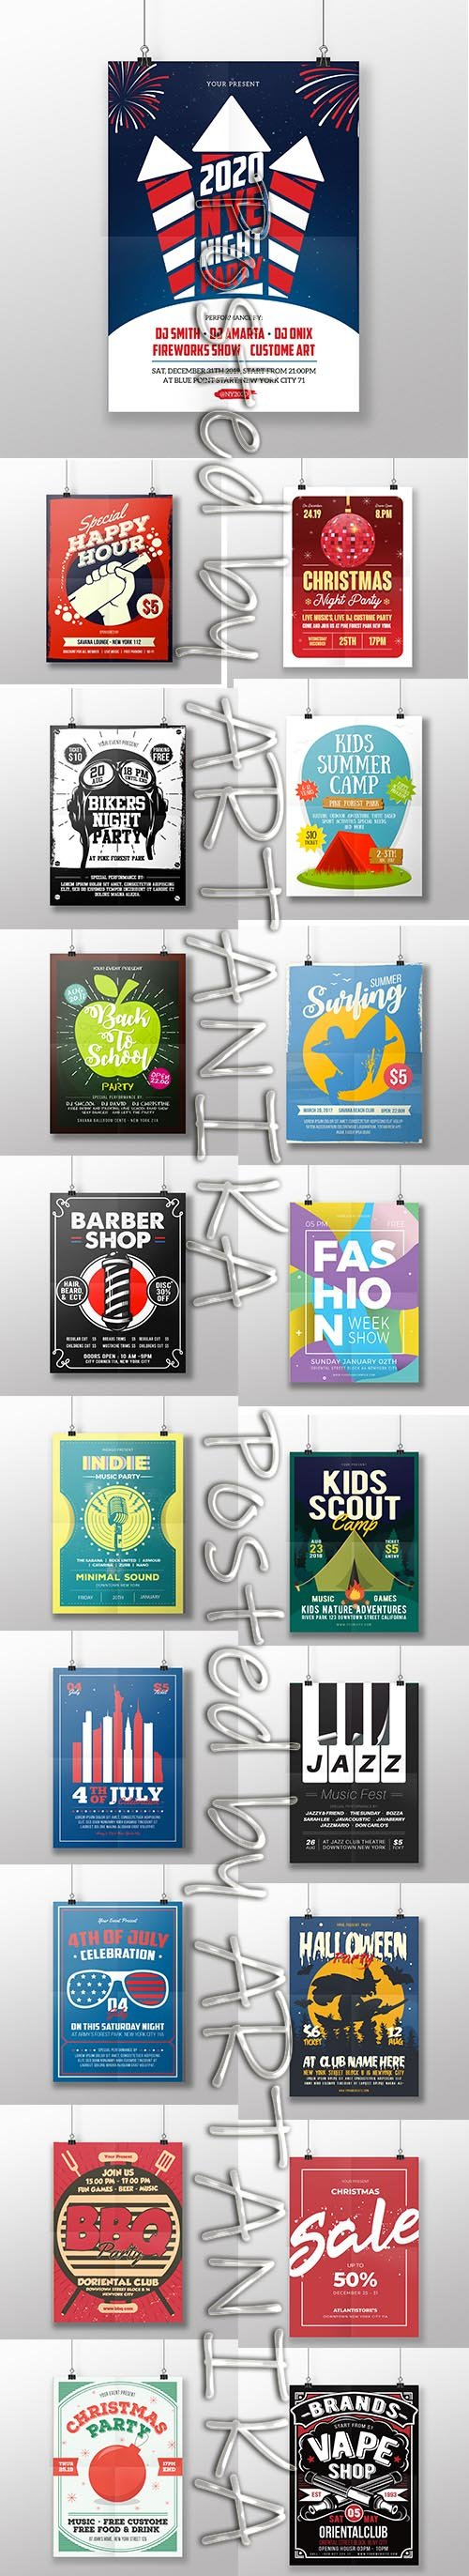 Collection of 19 Party Flyer Template